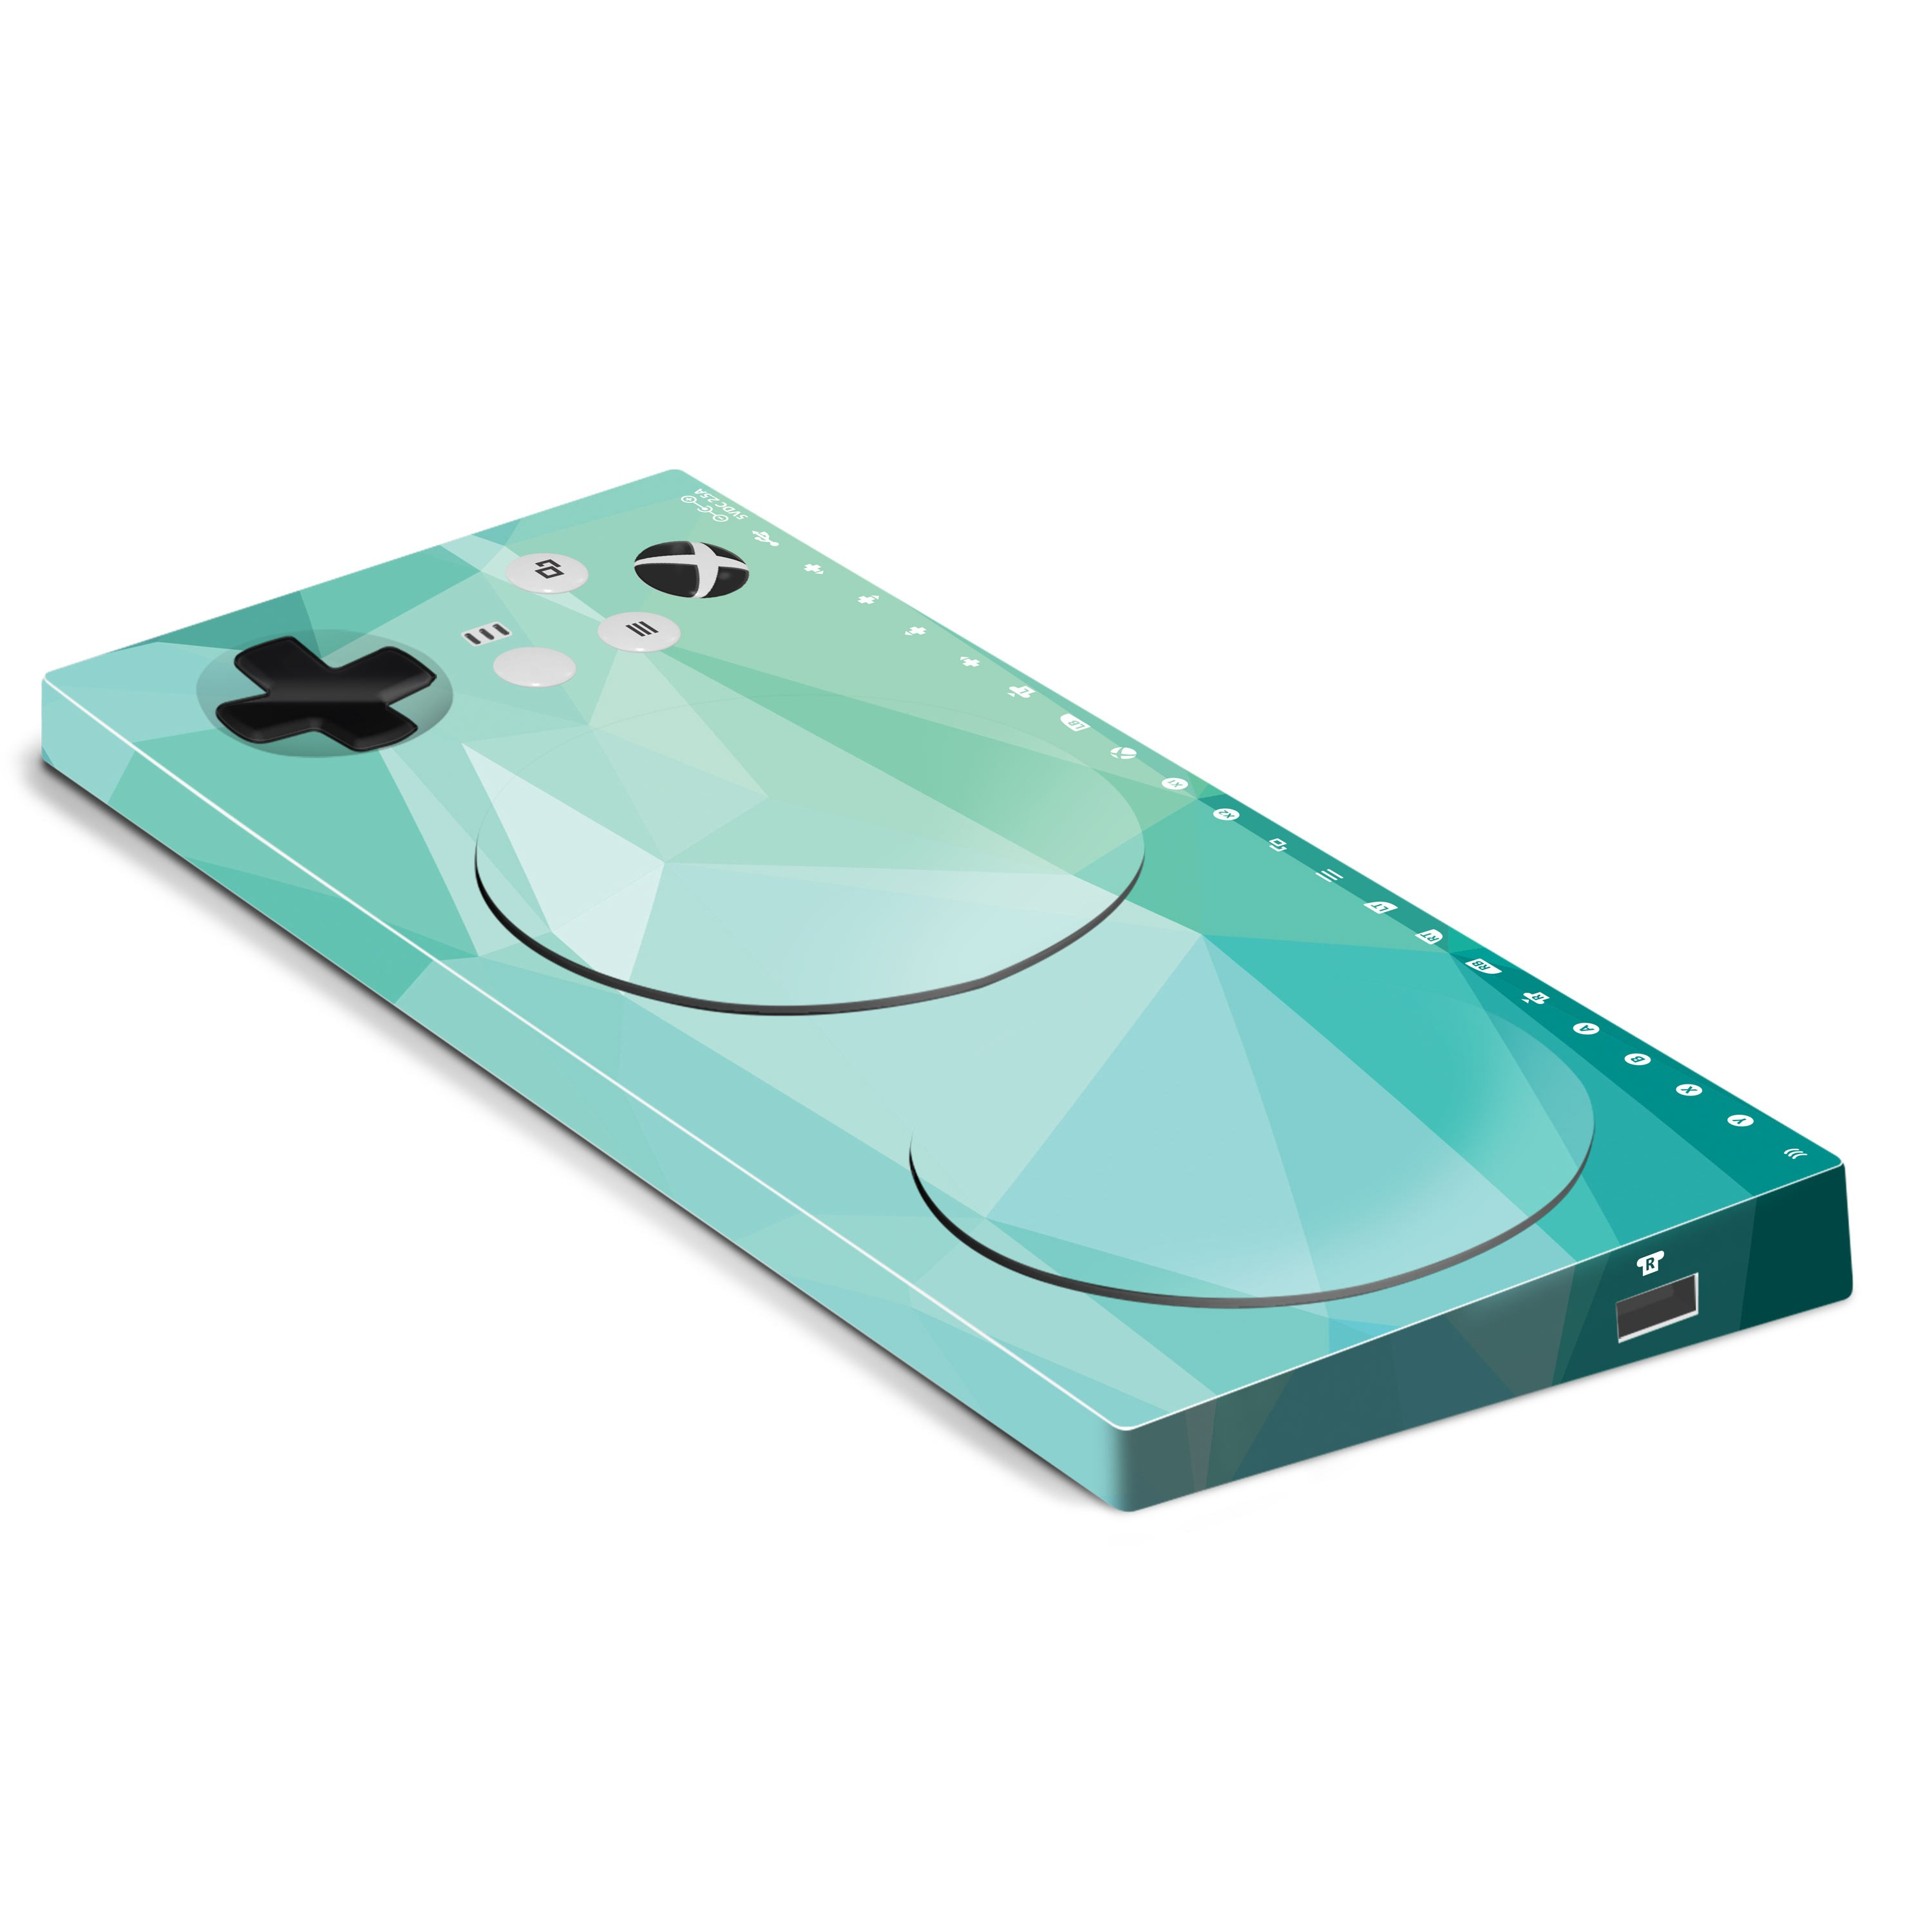 Xbox Adaptive Controller Skin: Teal Poly